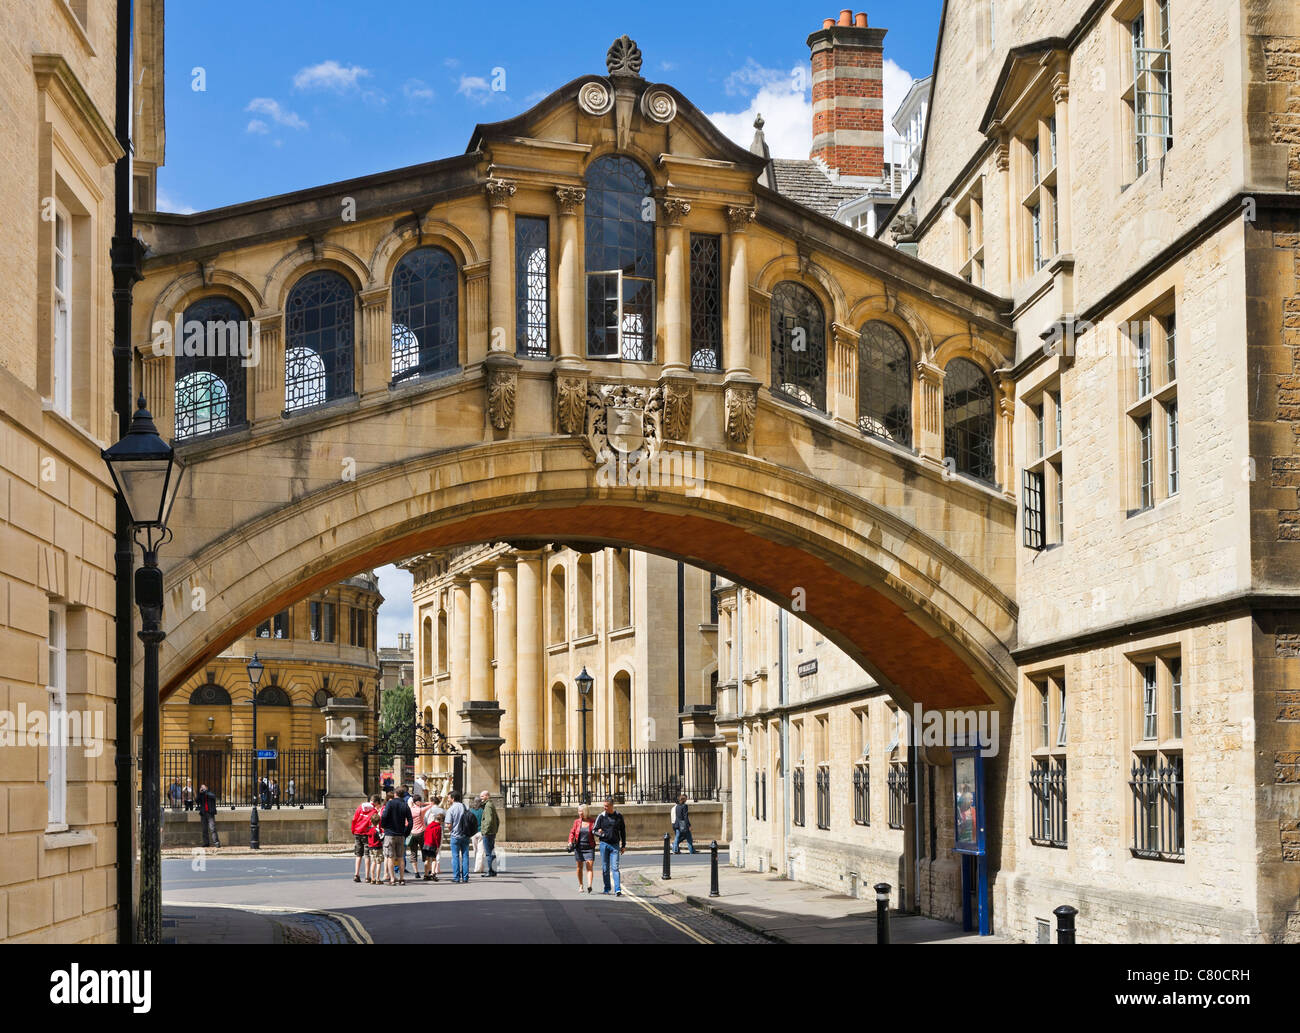 Oxford University. The Hertford Bridge (commonly 'The Bridge of Sighs') on New College Lane, Oxford, Oxfordshire, - Stock Image